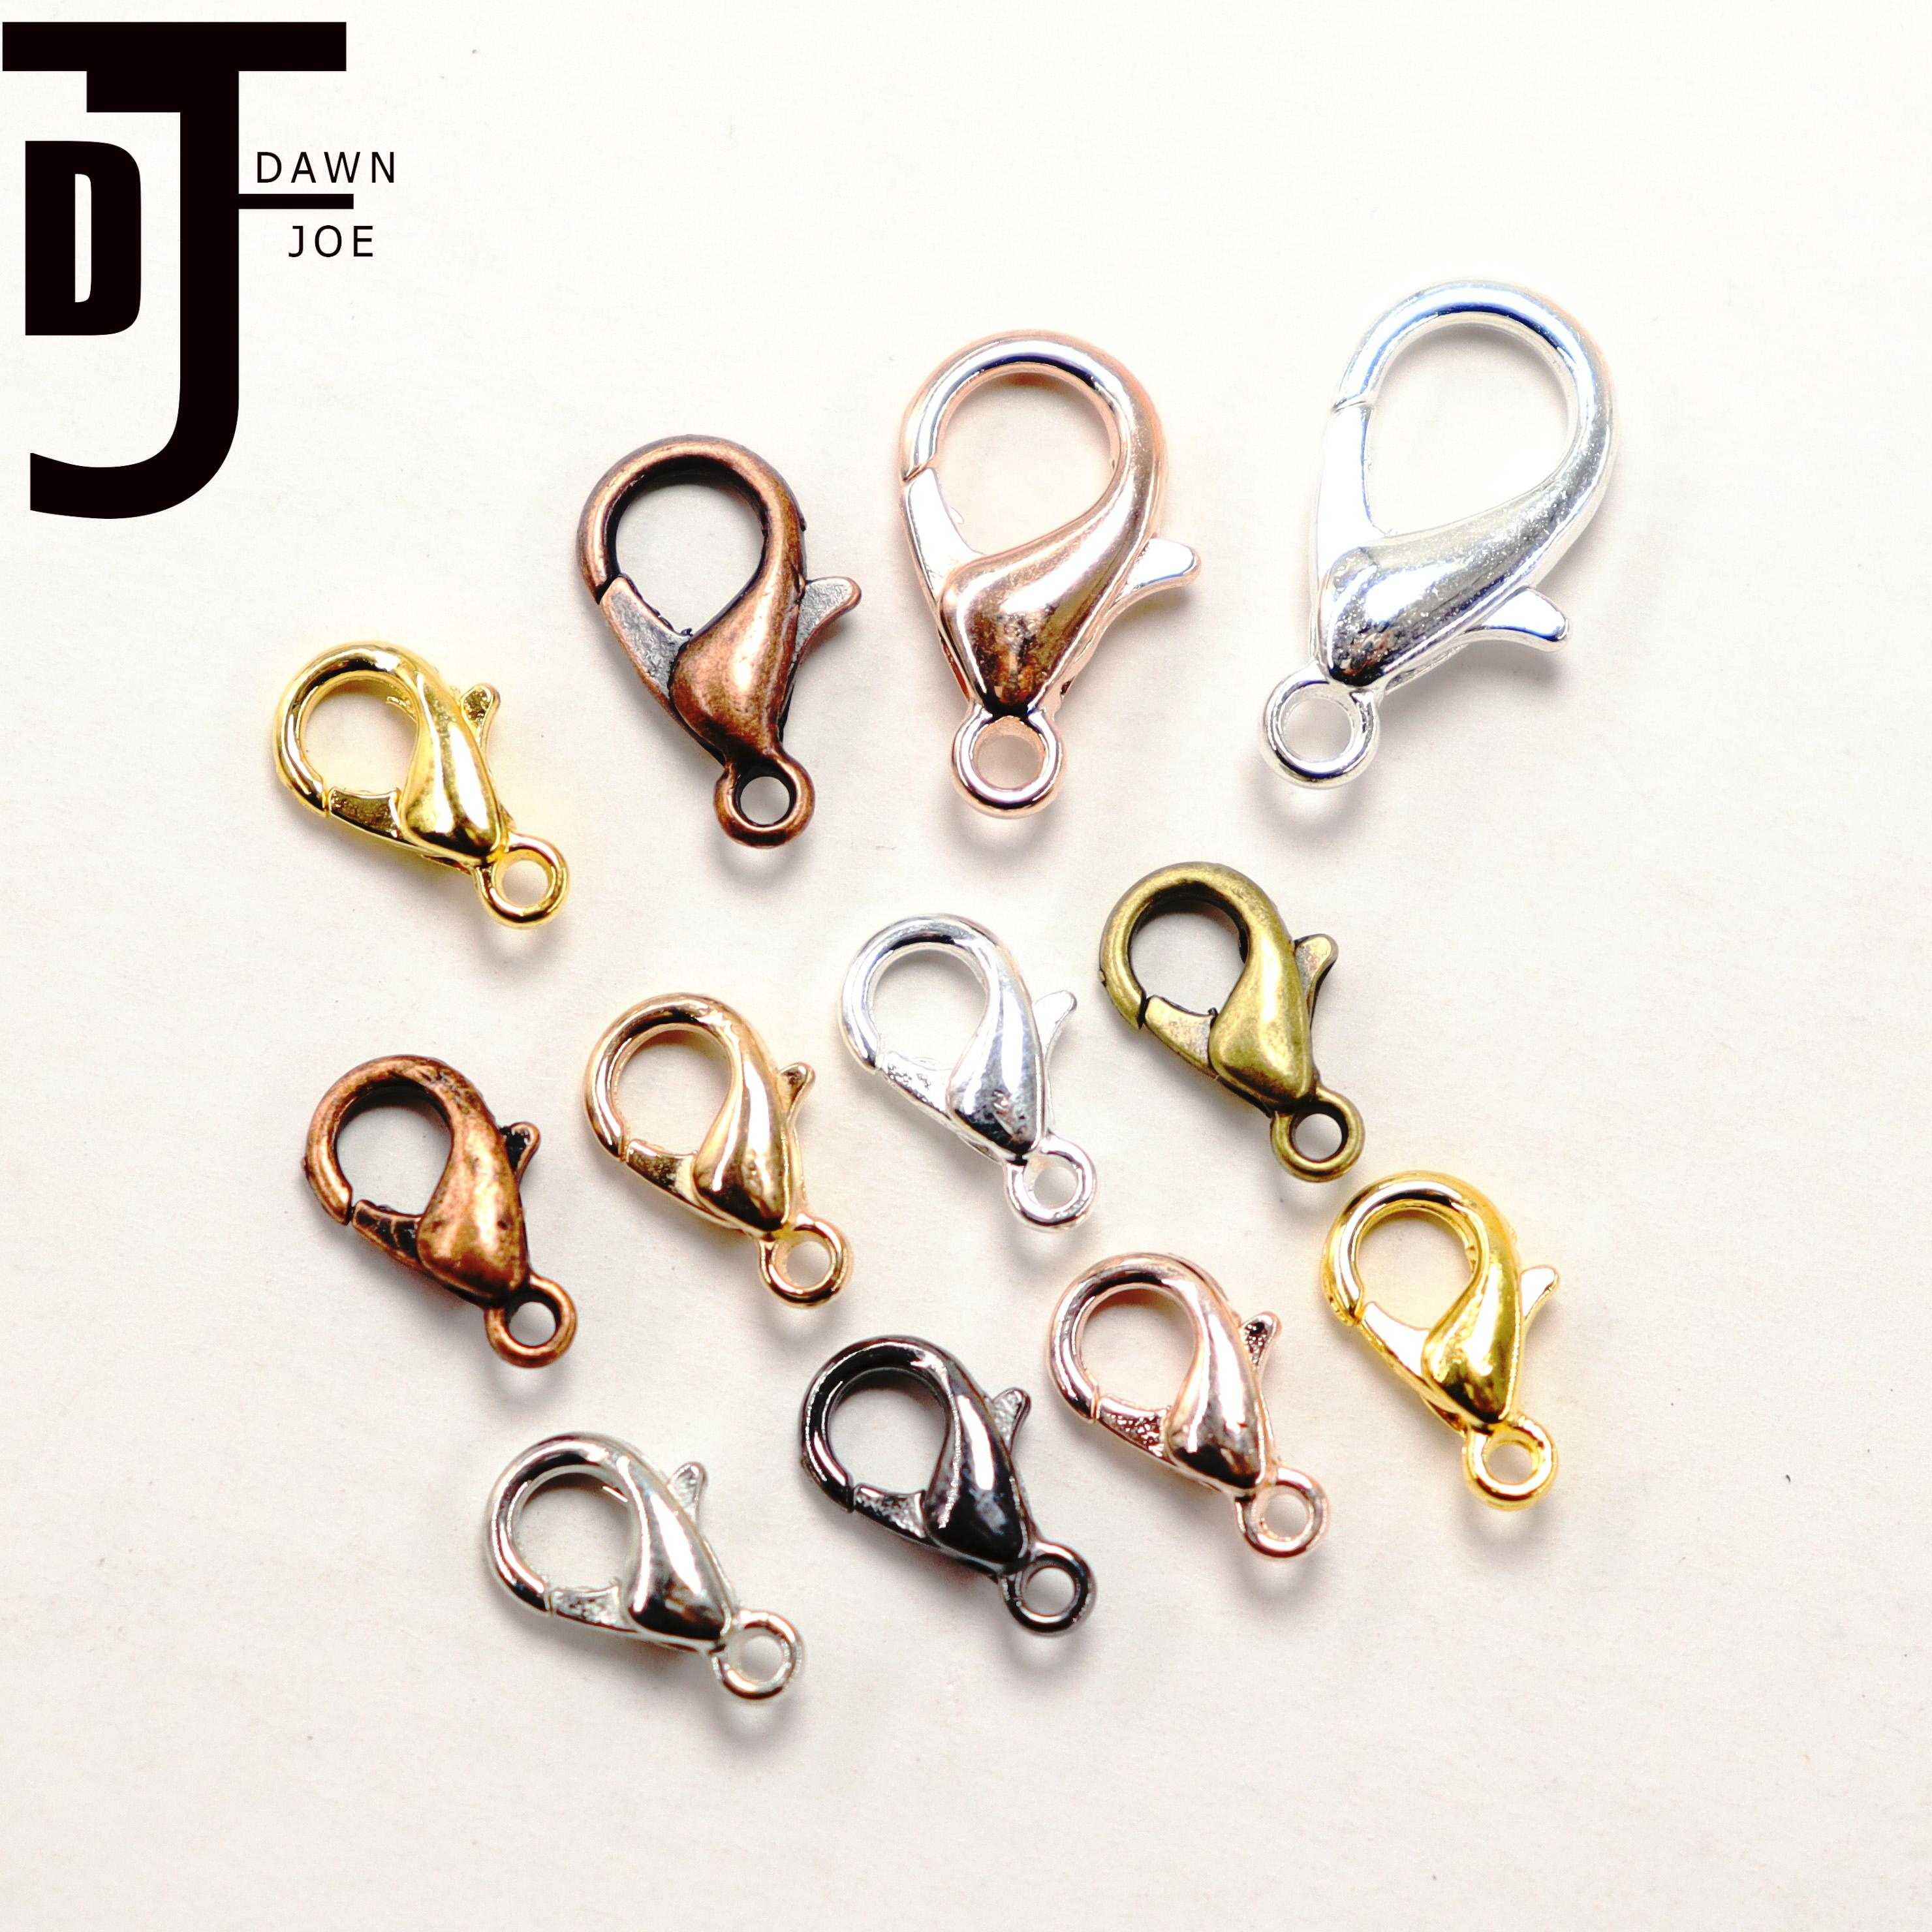 50pcs 10/12/14/16mm 8 Color Gold Lobster Clasps  DIY Jewelry Making Necklace Closure Connector Bracelet Lobster Buckle Finding